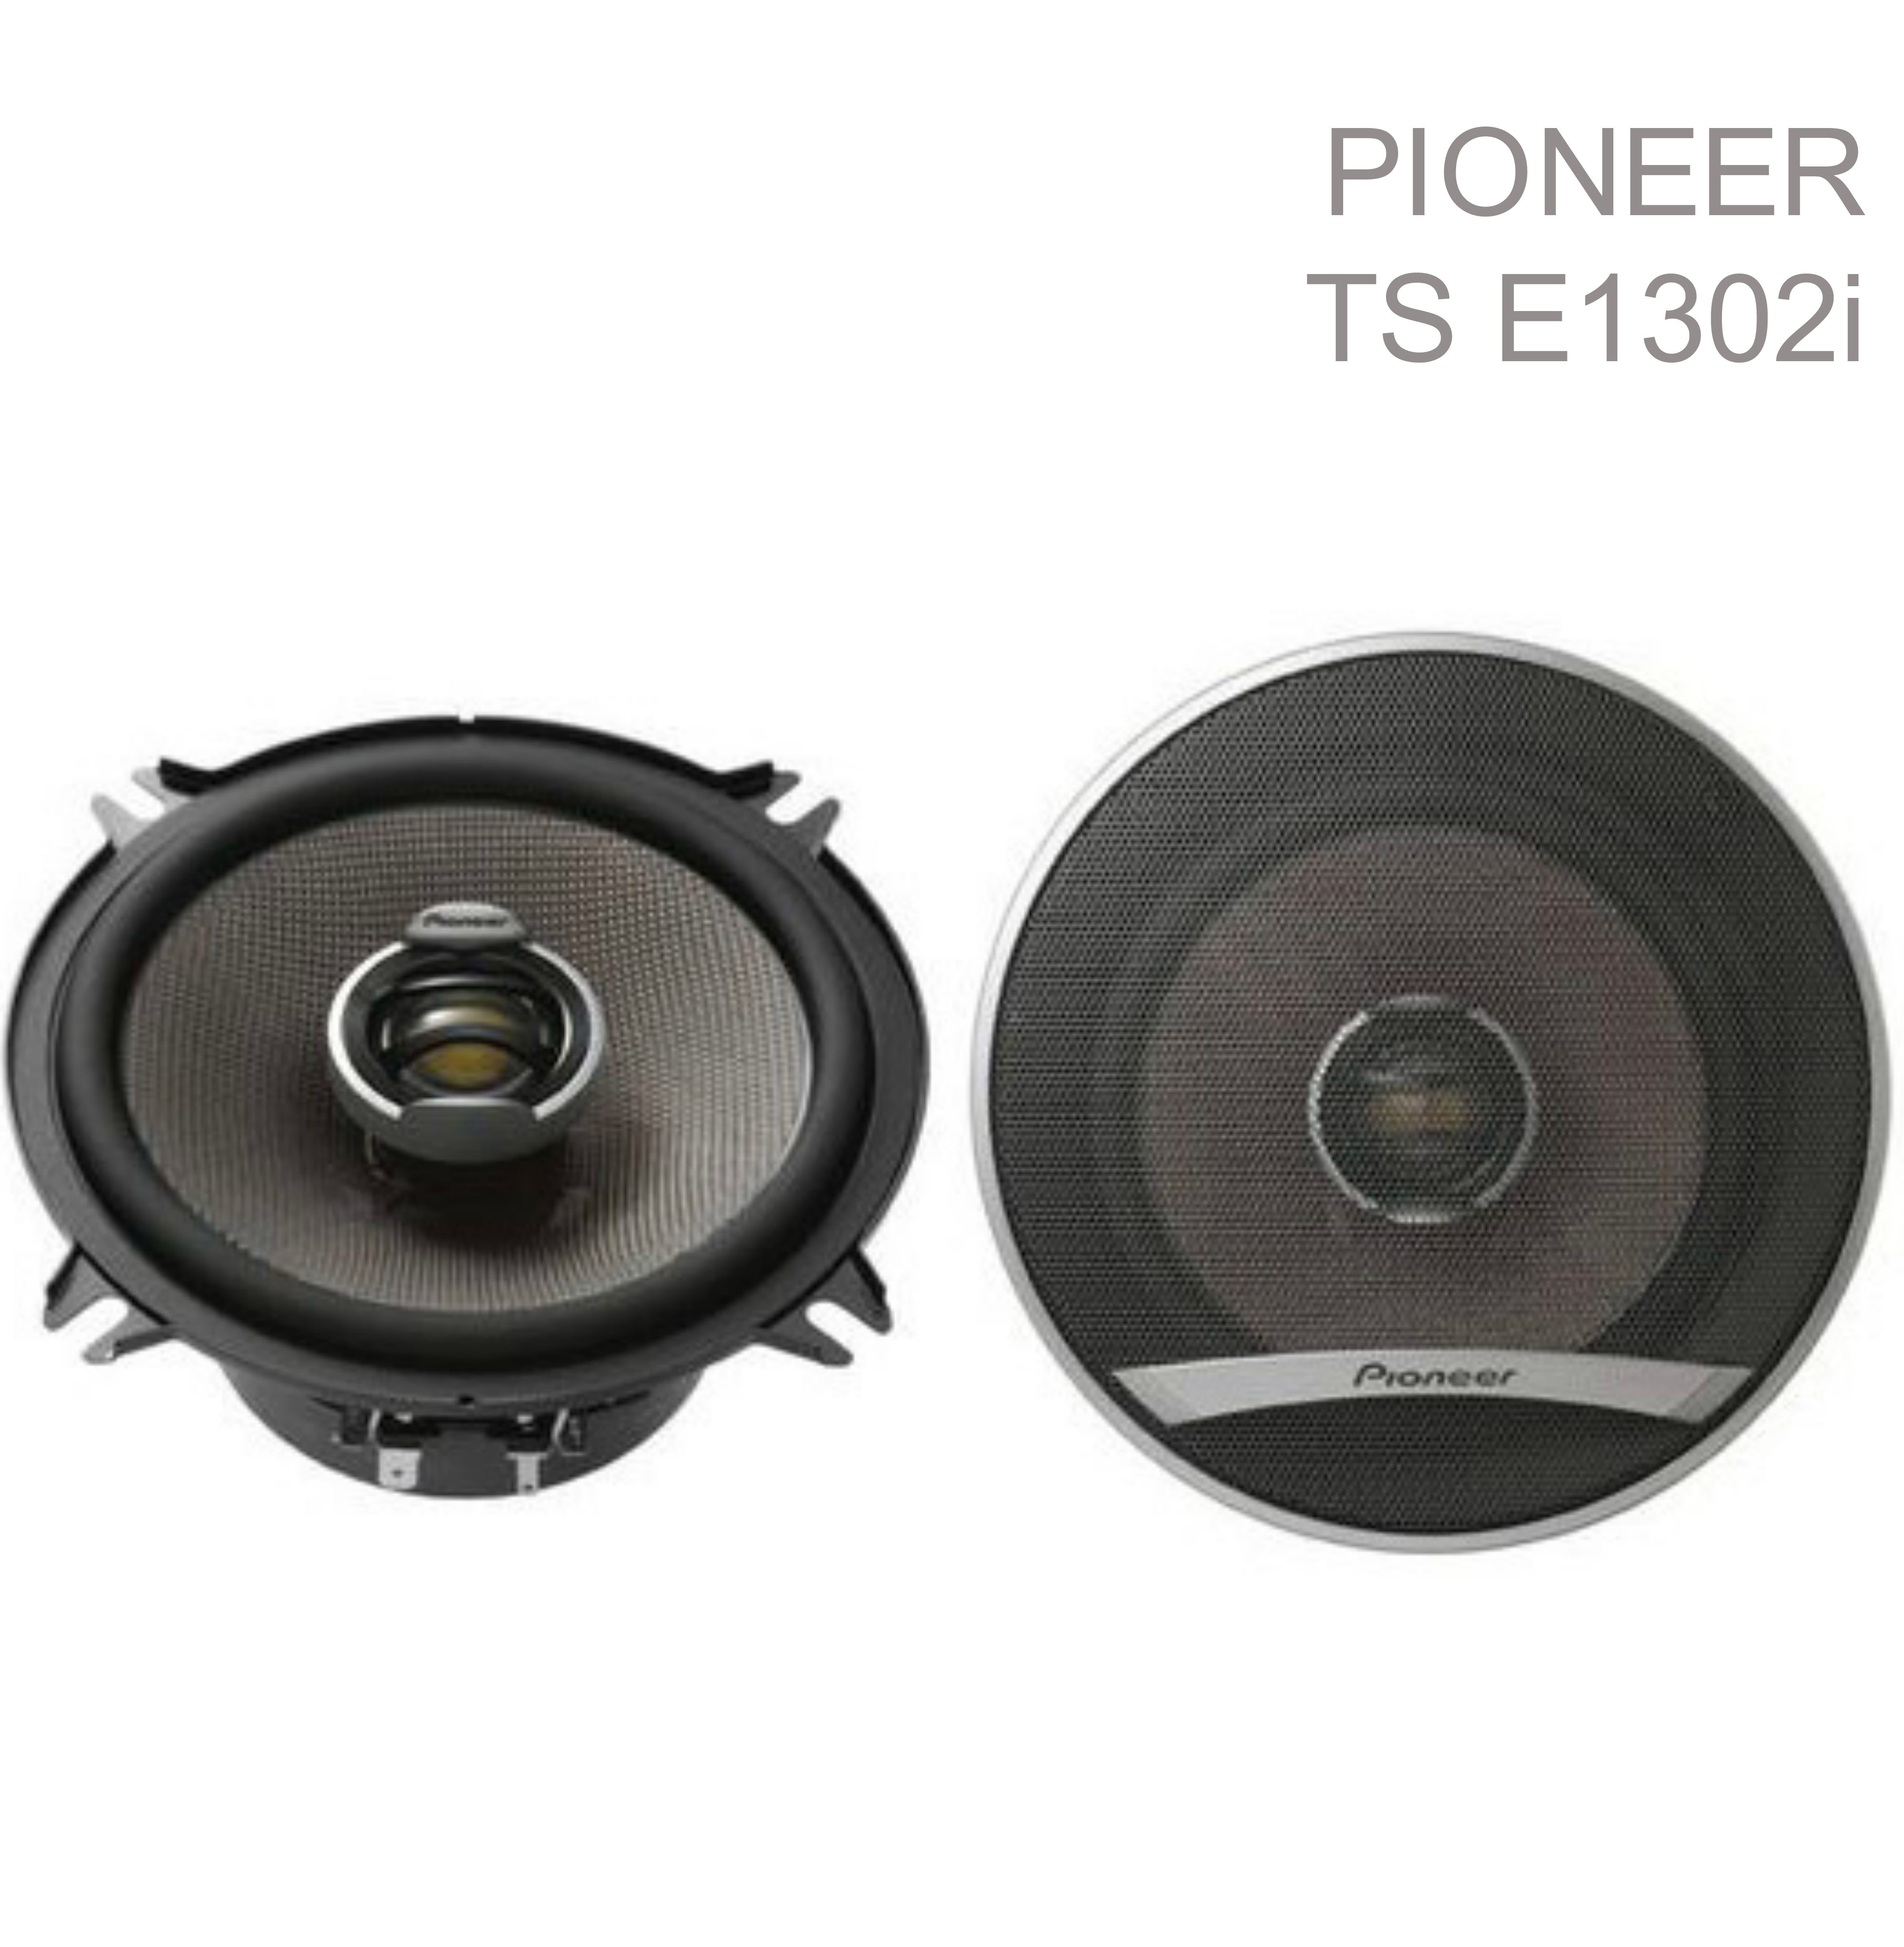 PIONEER TS E1302i 13cm 2 Way Coaxial 180W In Car Vehicle Audio Sound Speaker